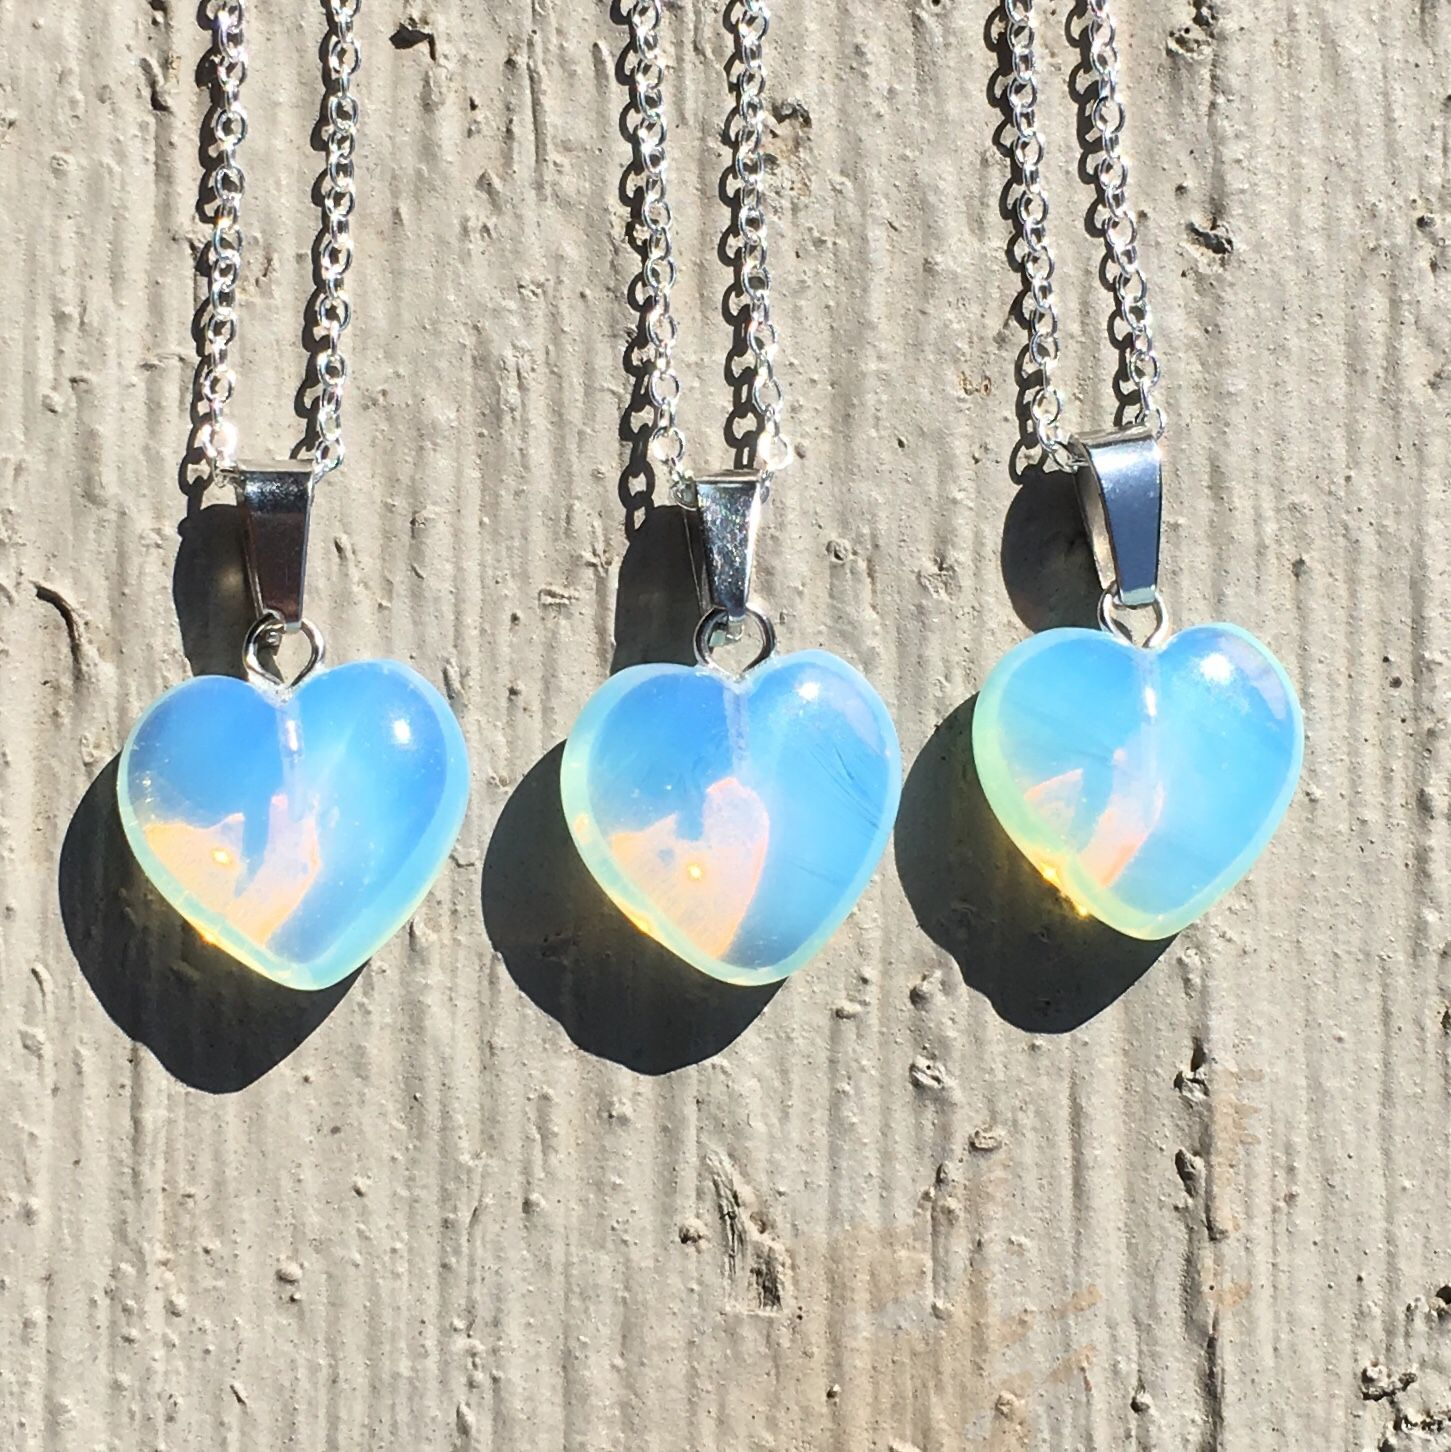 Sea Opal Heart Necklace with Sterling Silver Chain // Opal Opalite Moonstone Jewelry